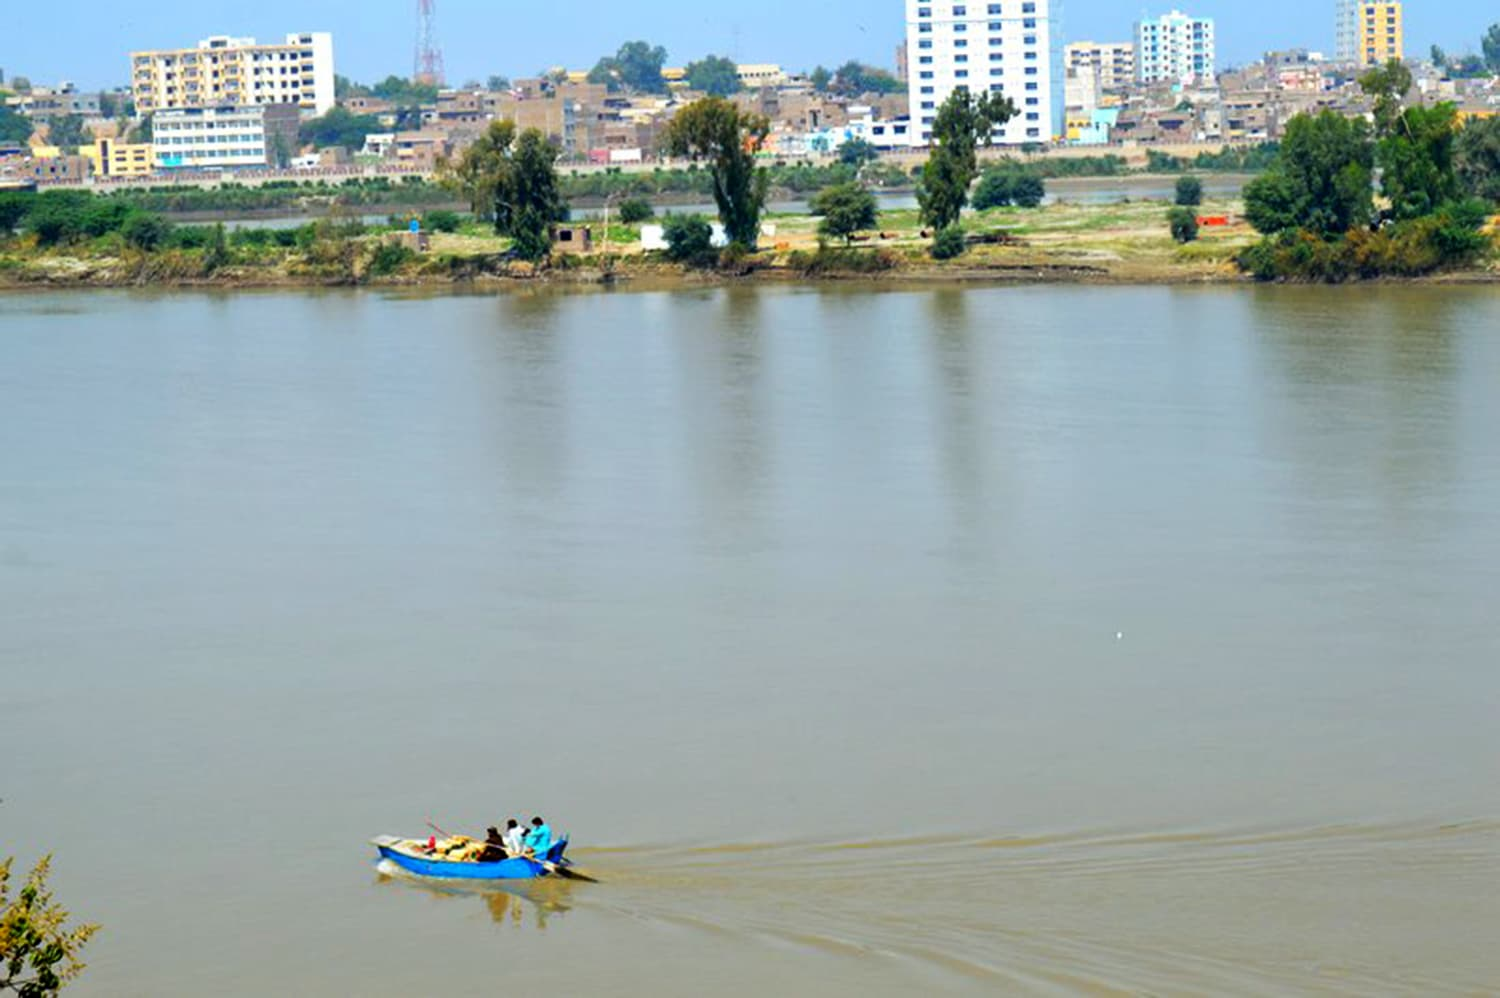 A boat floating on the Indus. Rohri can be seen in the background.